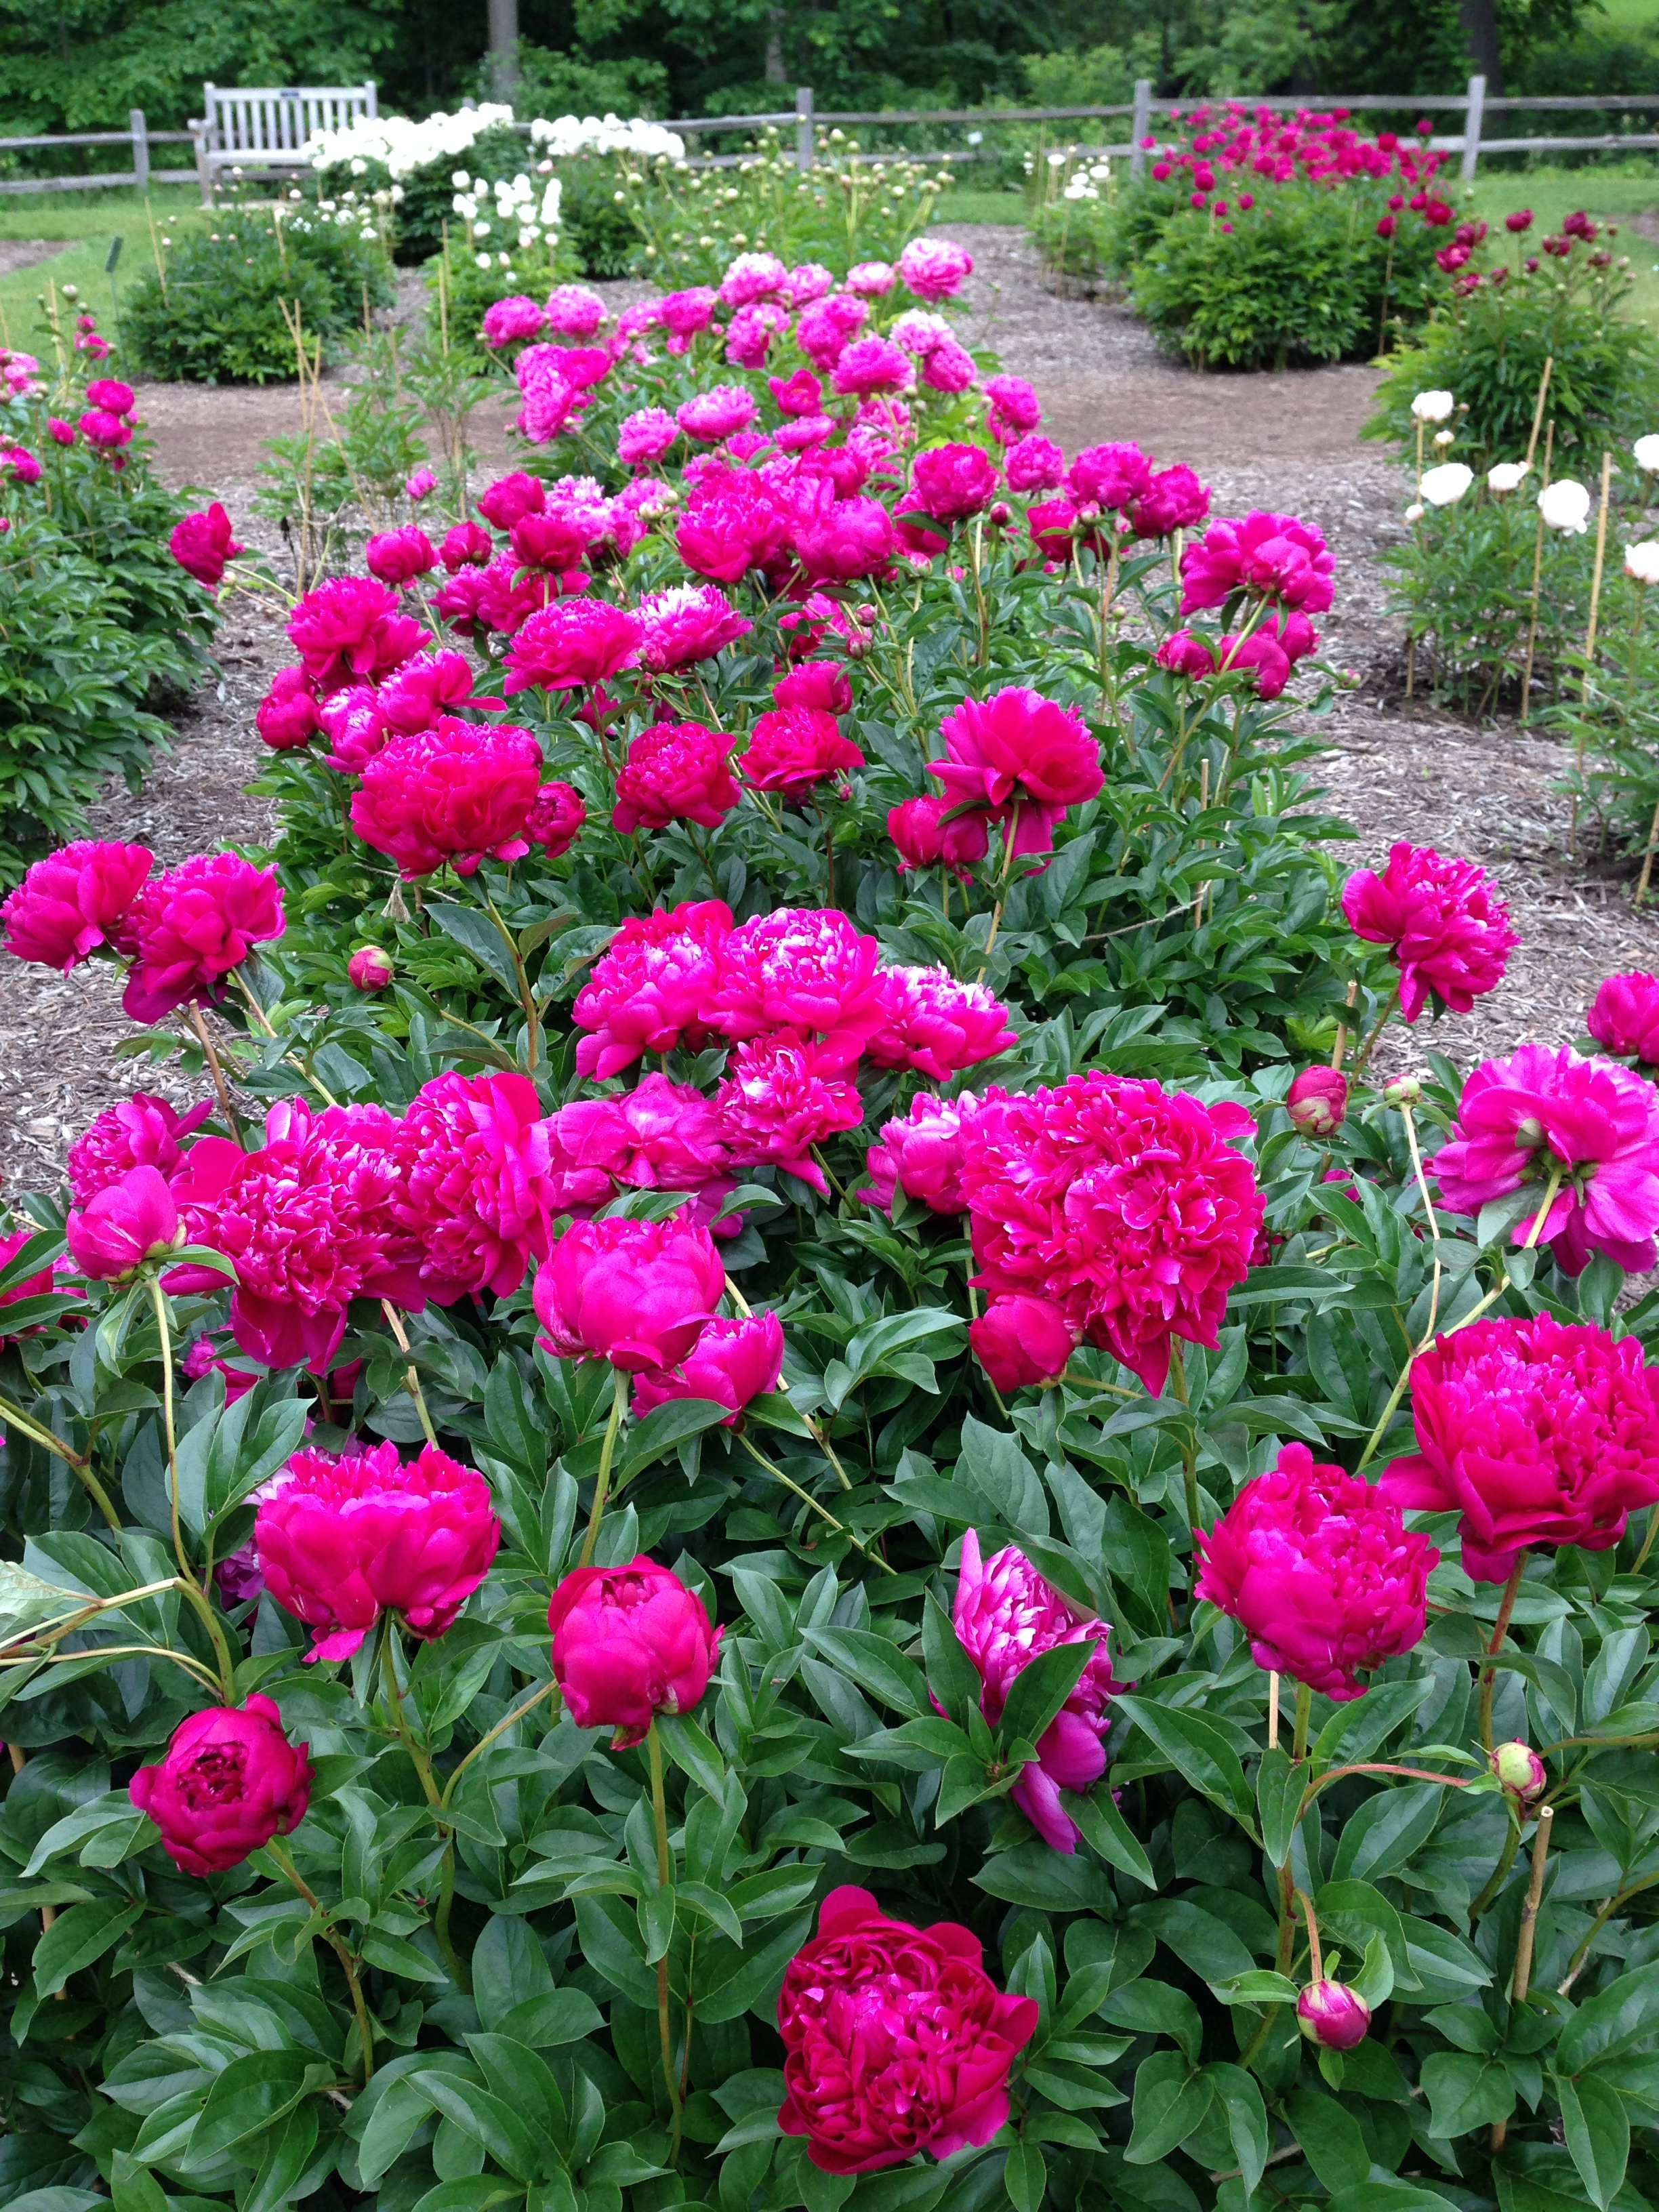 Peonies at  Nichols Arboretum  on the UM Campus Ann Arbor, Michigan June 2015